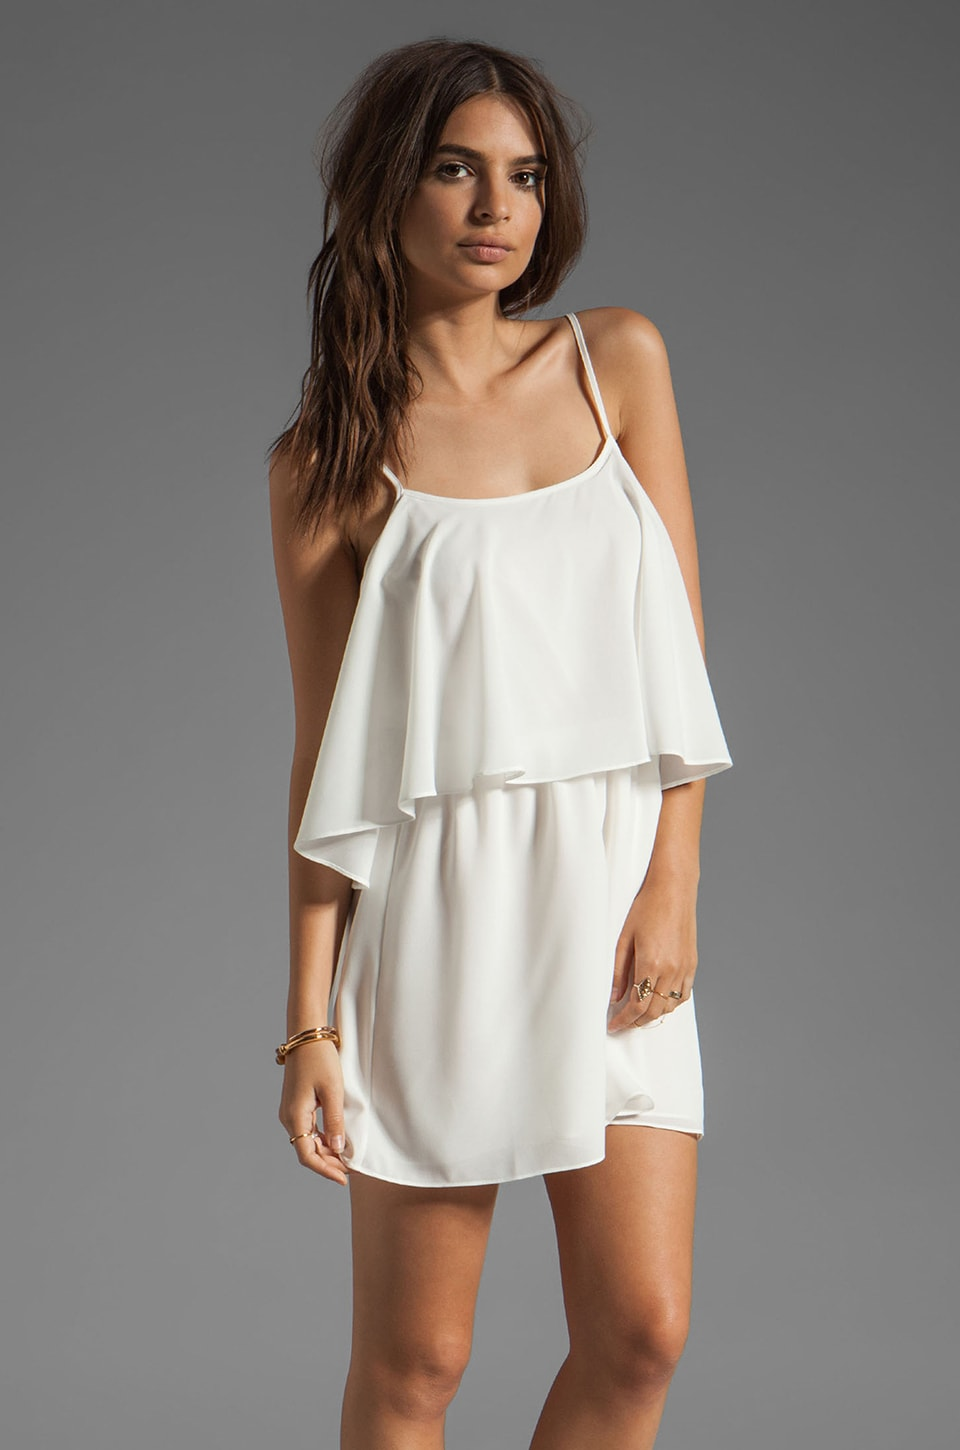 Lovers + Friends Sunkissed Dress in White